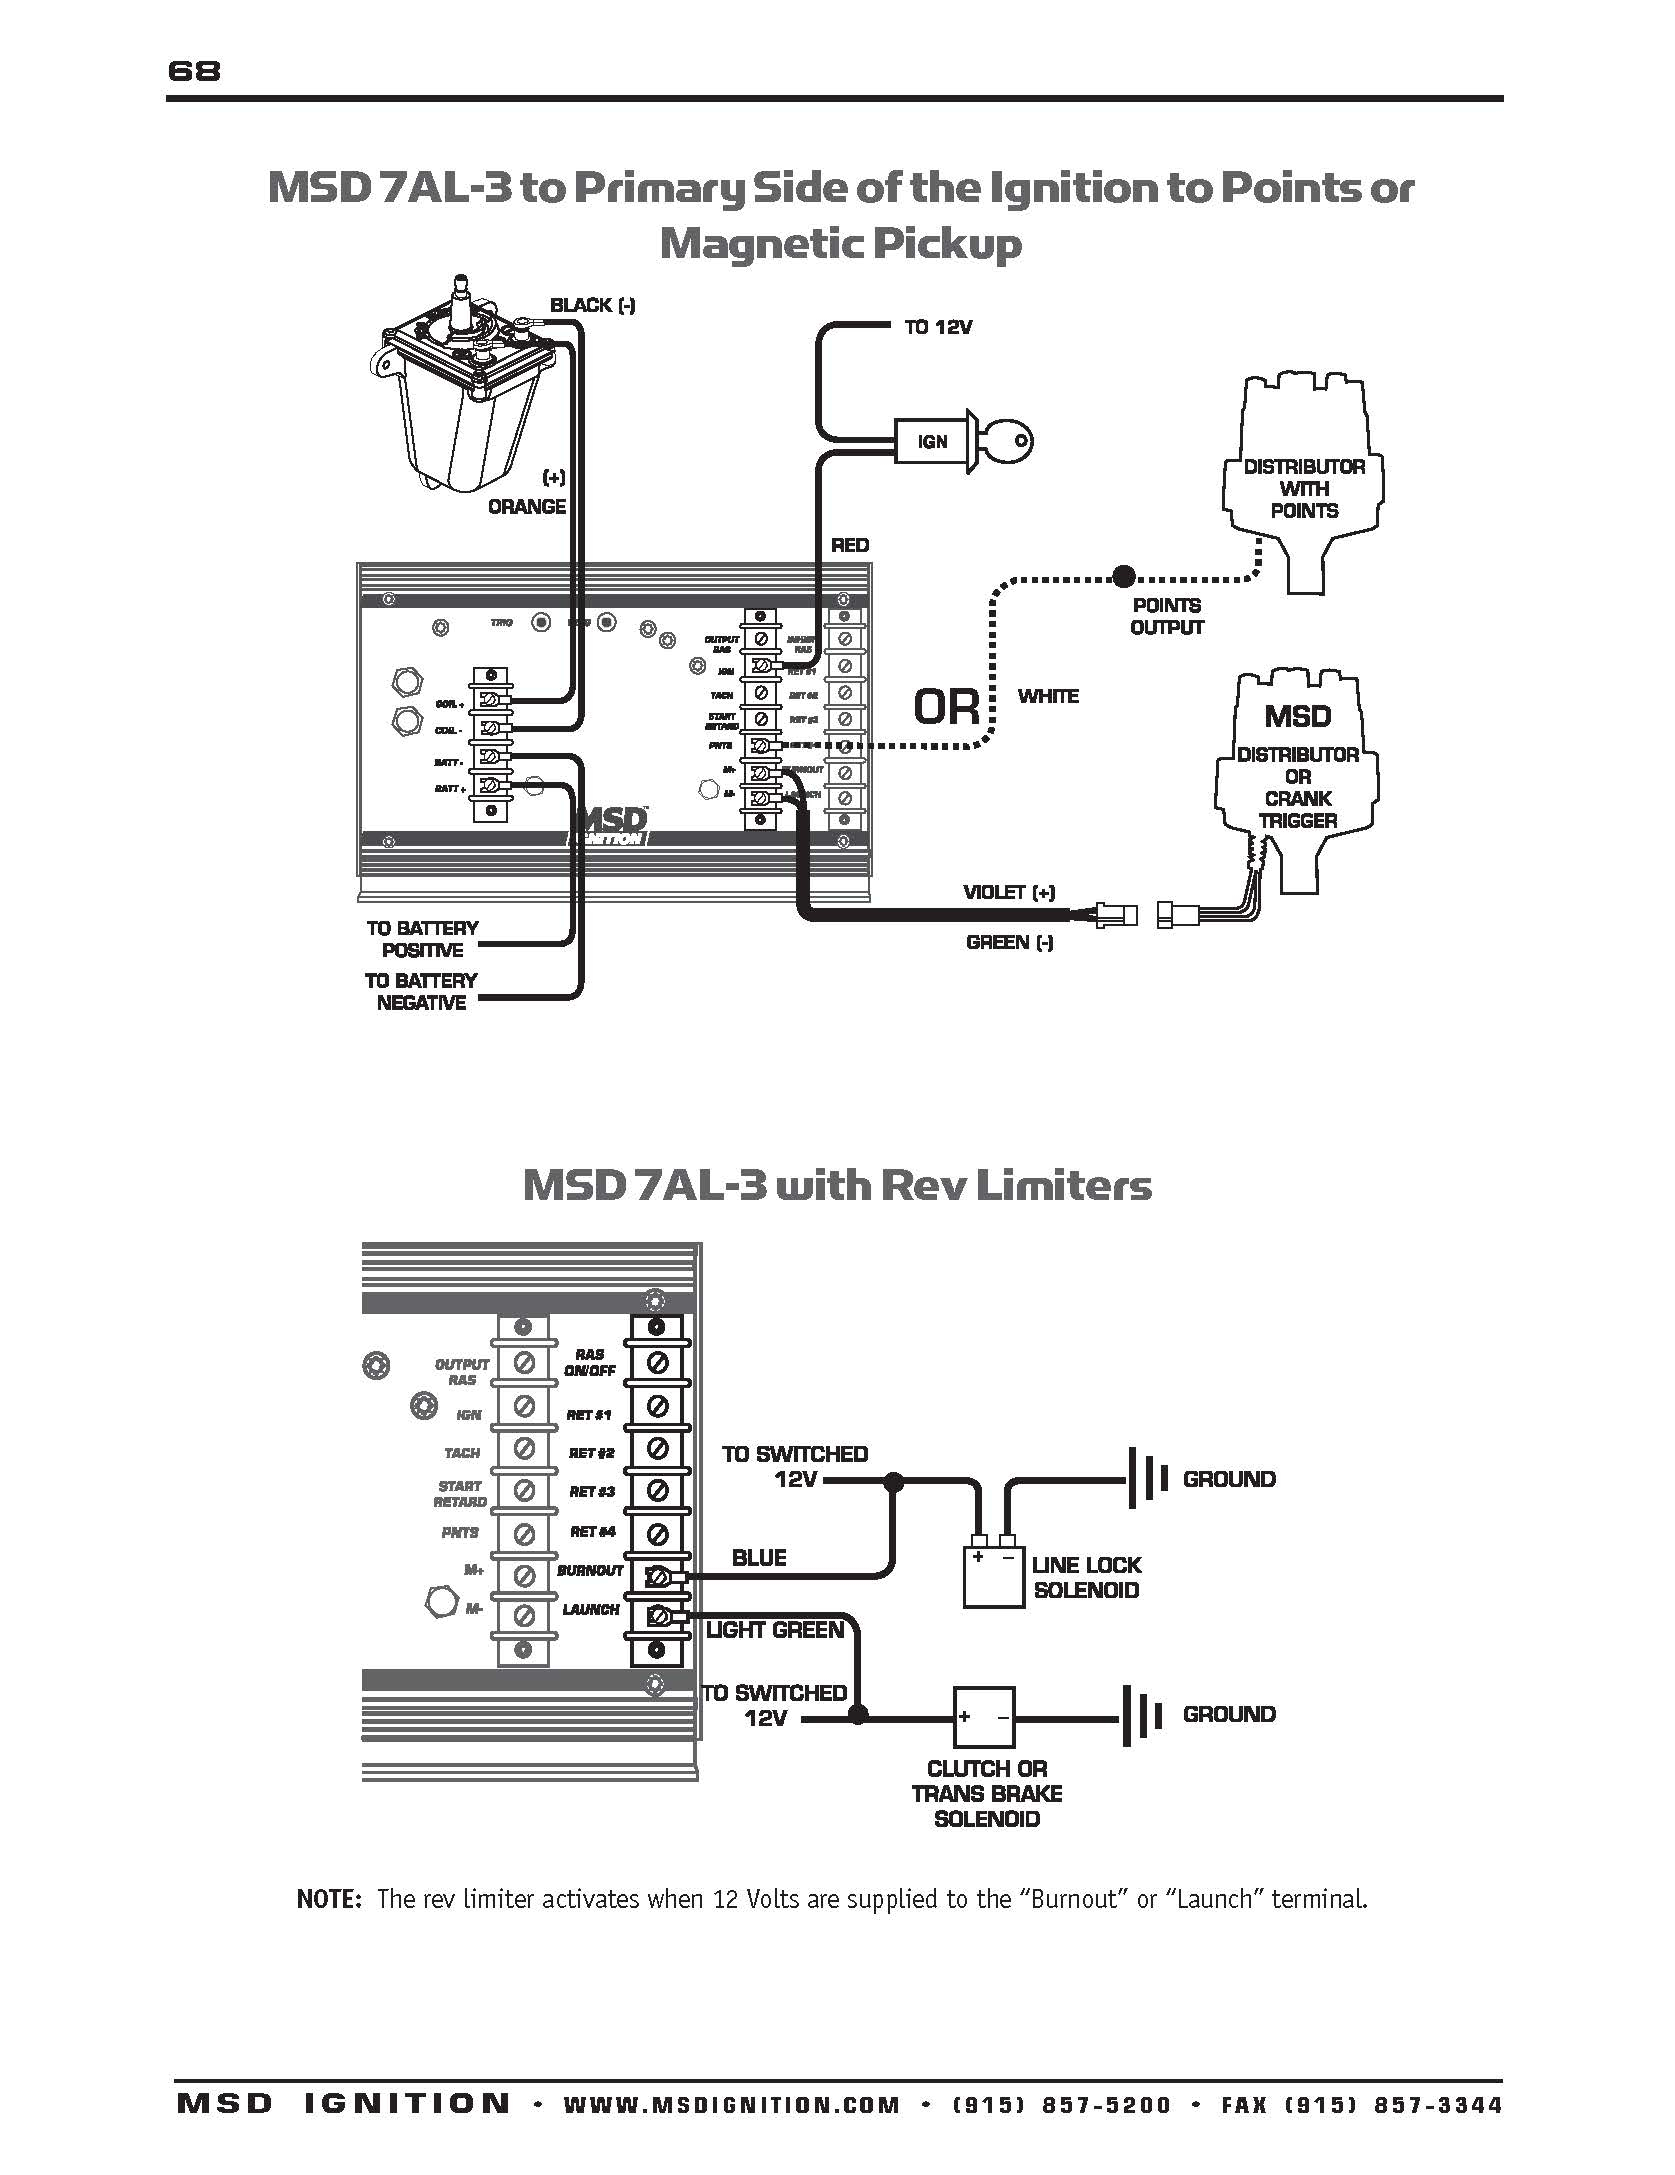 msd 7al 3 ignition wiring diagram - wiring diagram schema fat-track-a -  fat-track-a.atmosphereconcept.it  atmosphereconcept.it